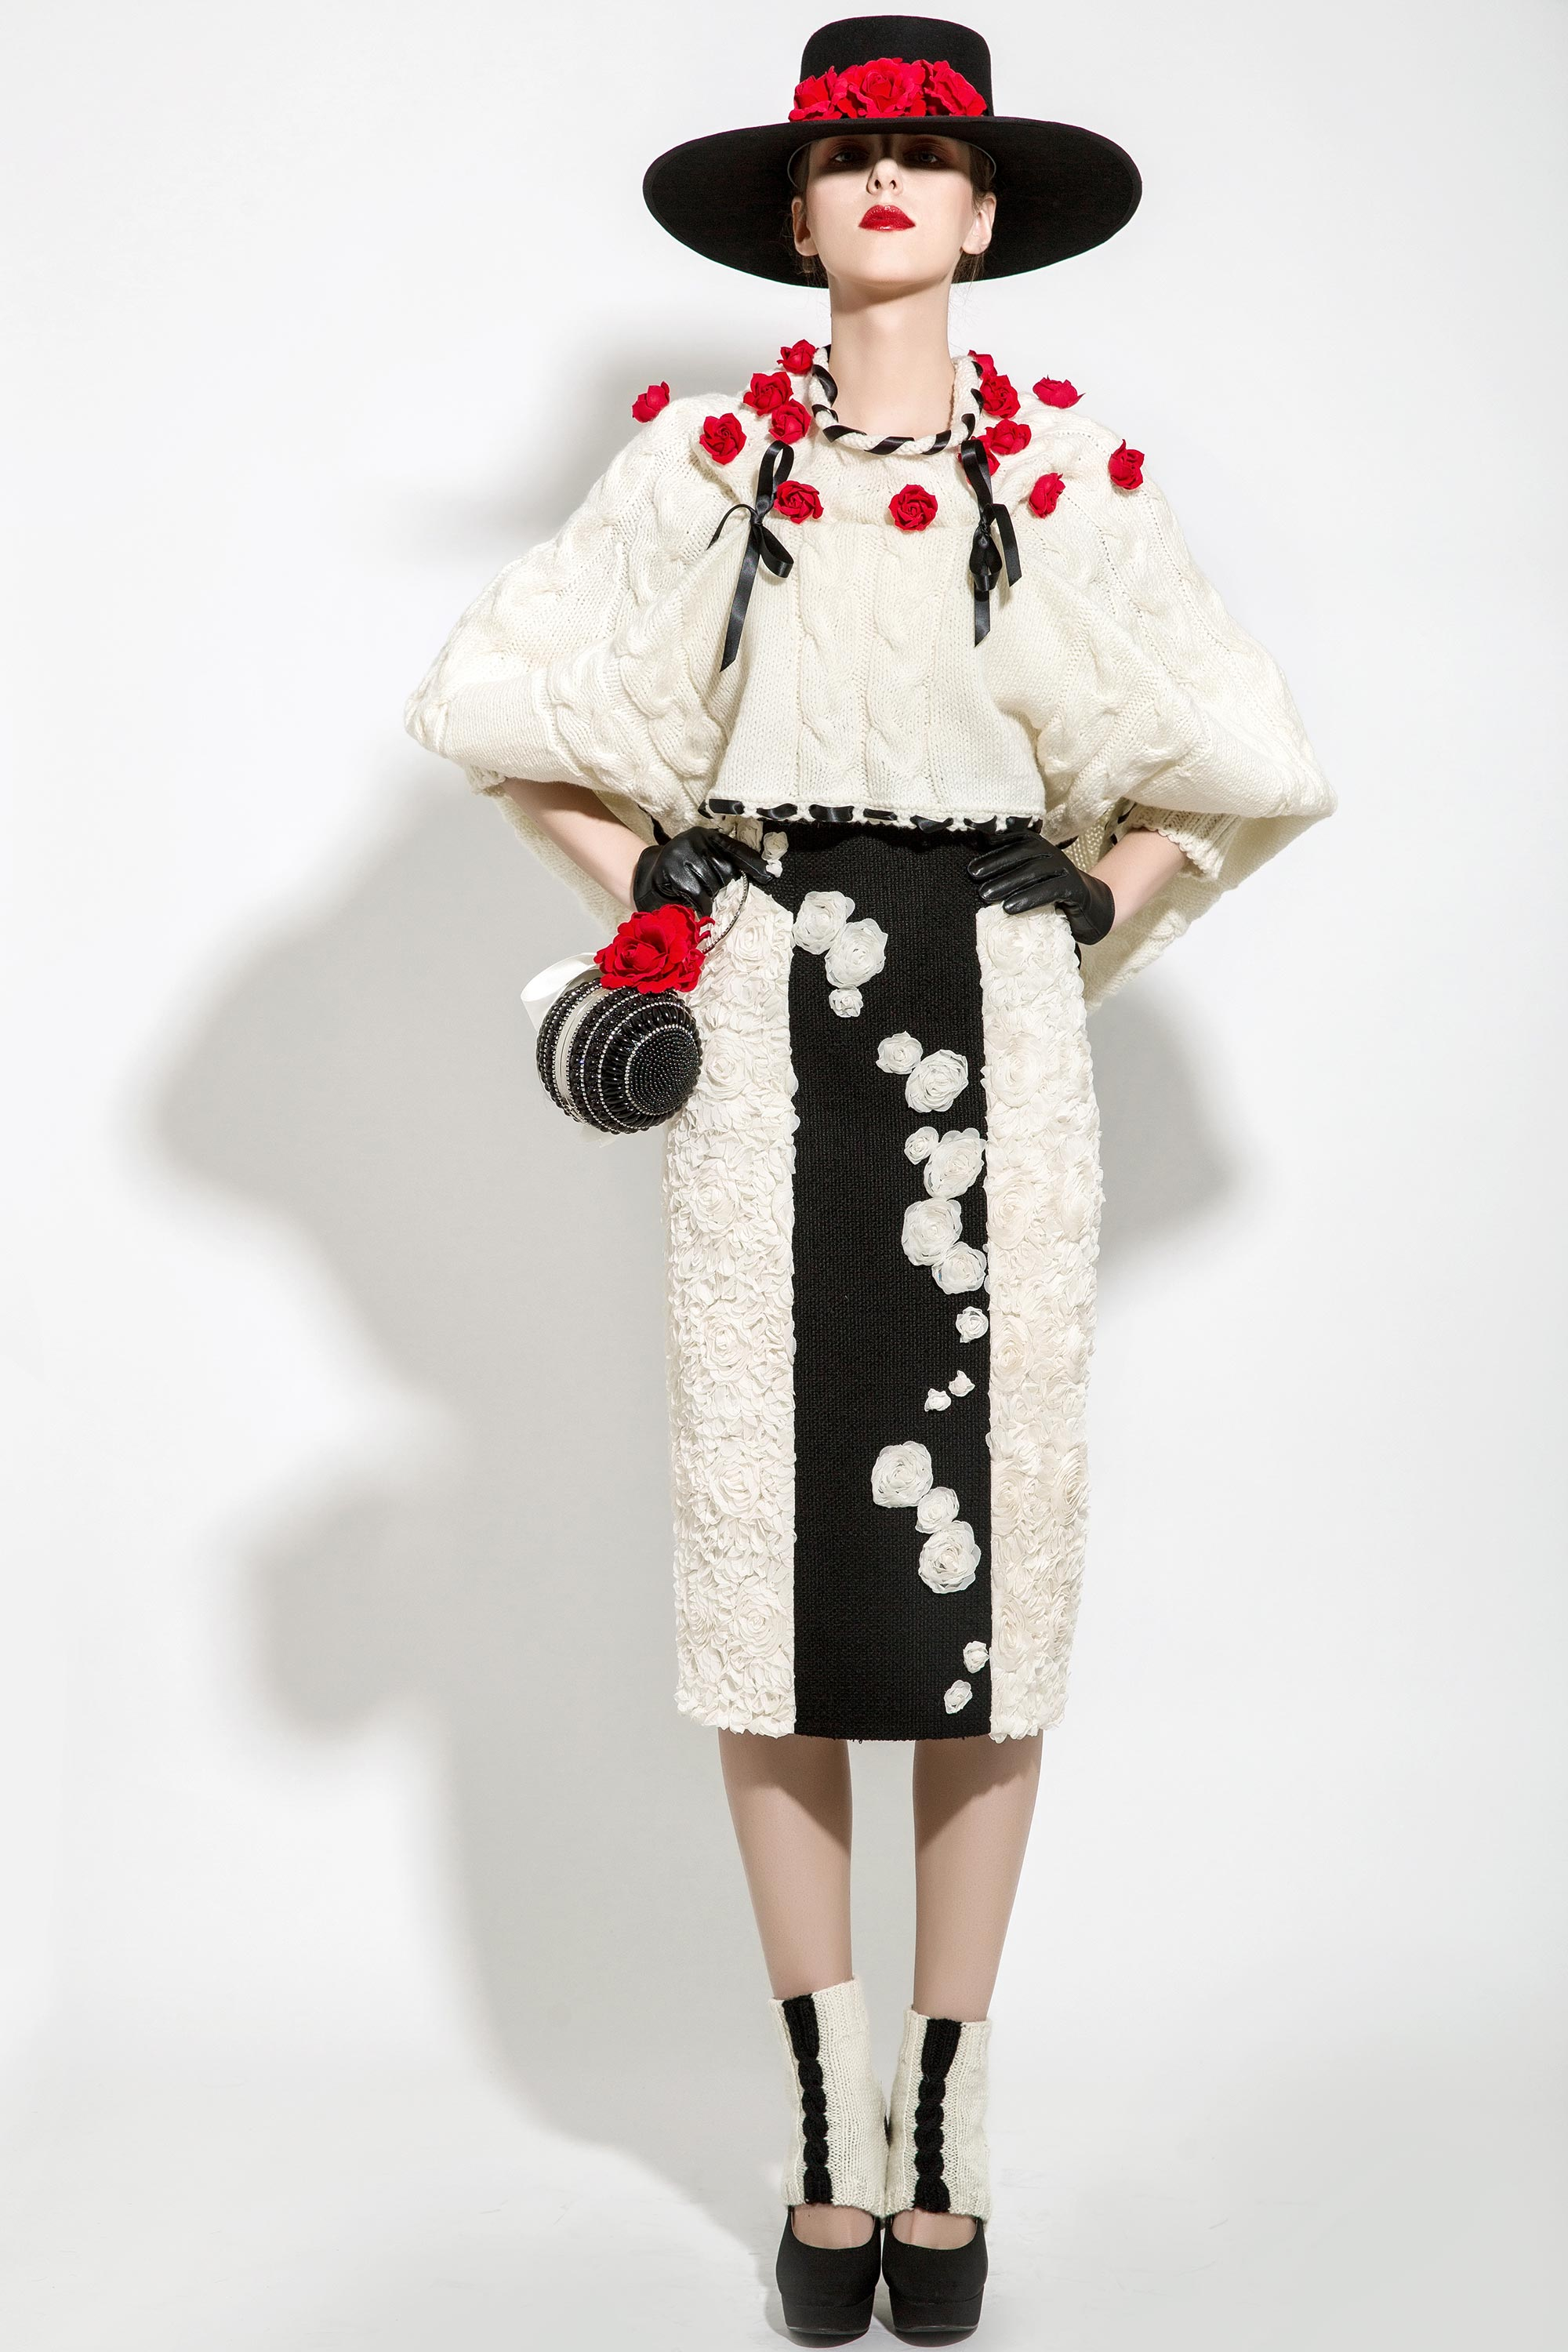 Wool Knitted Rose Braided Cape with 3D Rosettes Embroidered Skirt, Black/Cream/Red